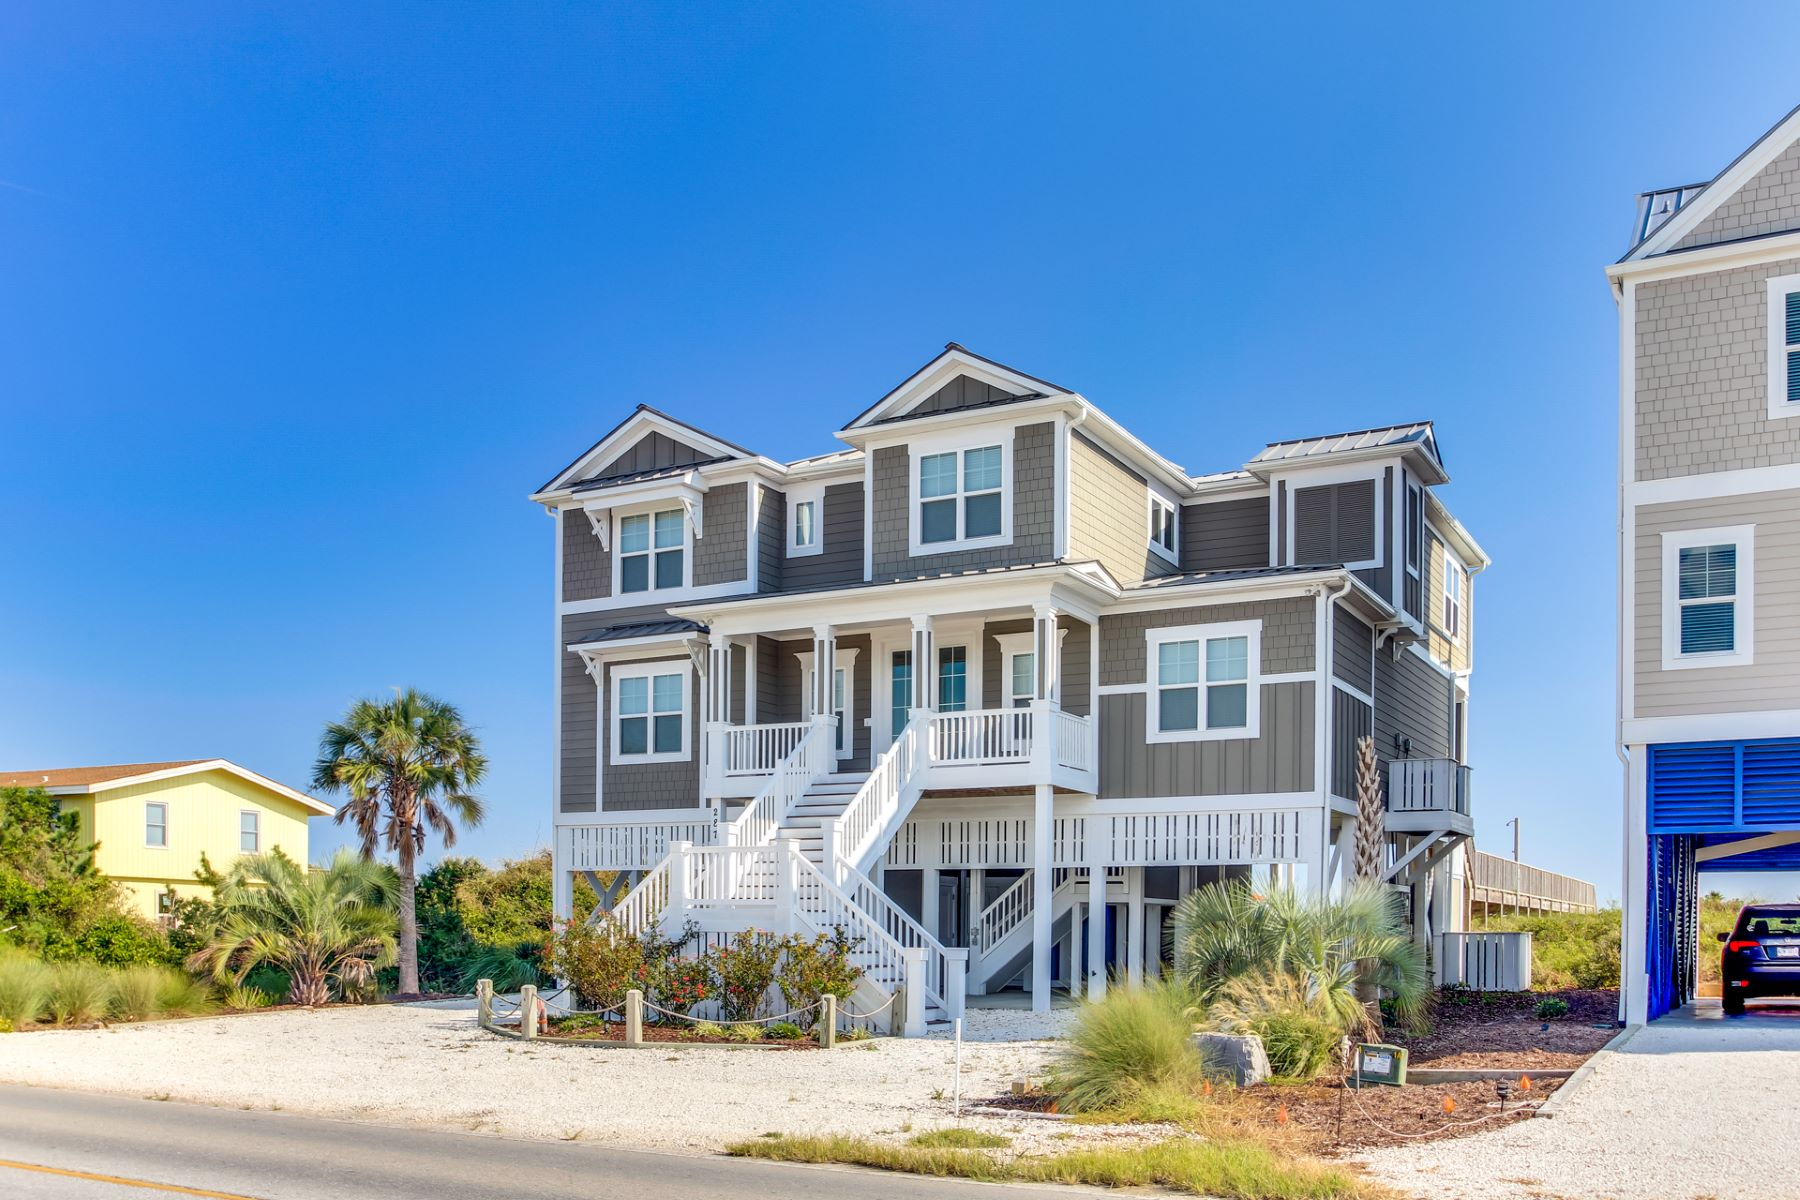 Single Family Homes for Sale at Luxury Ocean Front Home 287 Ocean Boulevard W. Holden Beach, North Carolina 28462 United States